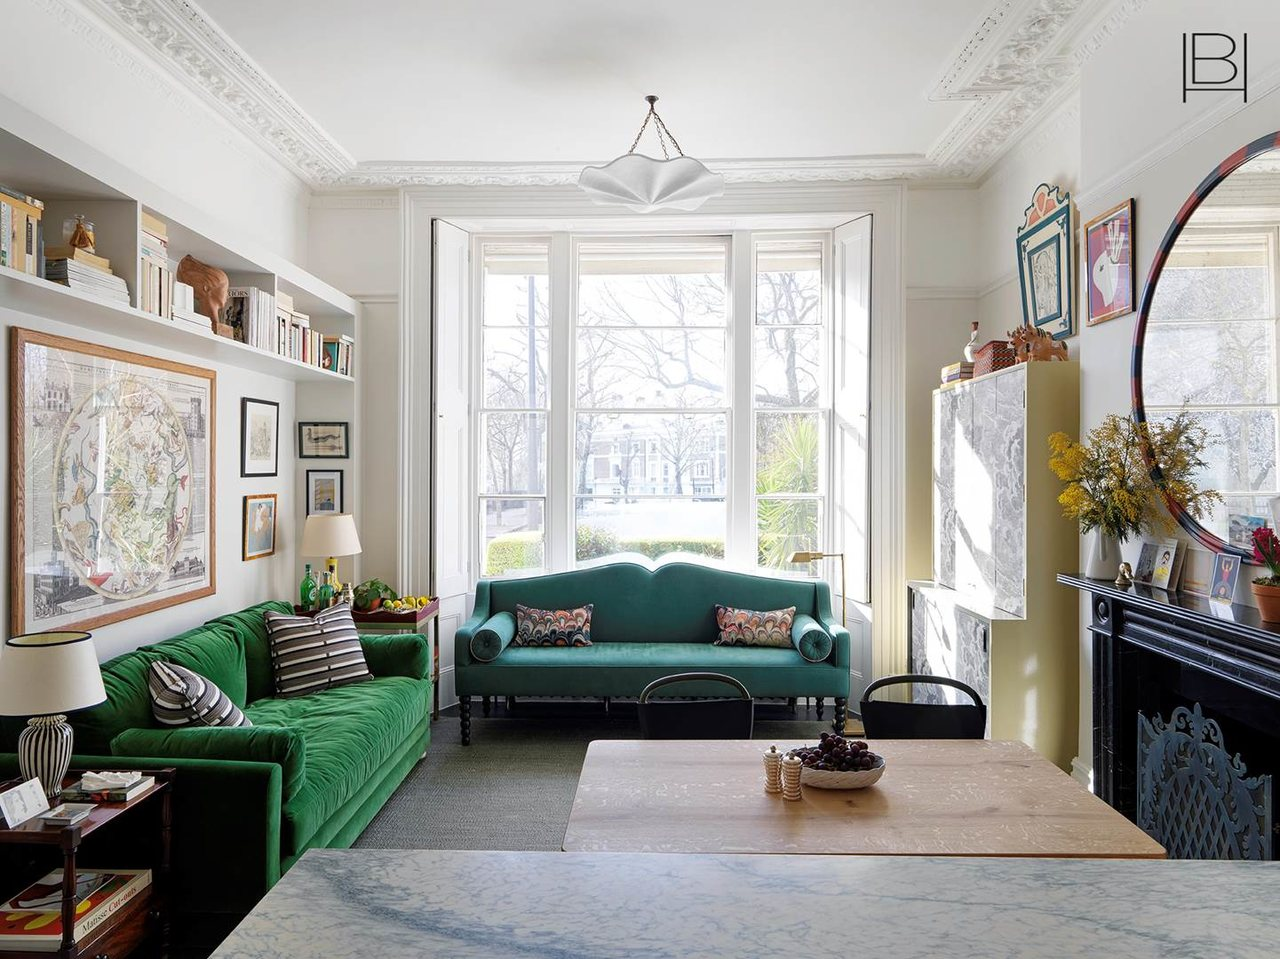 Discover These Inspiring Interior Design Projects by Beata Heuman